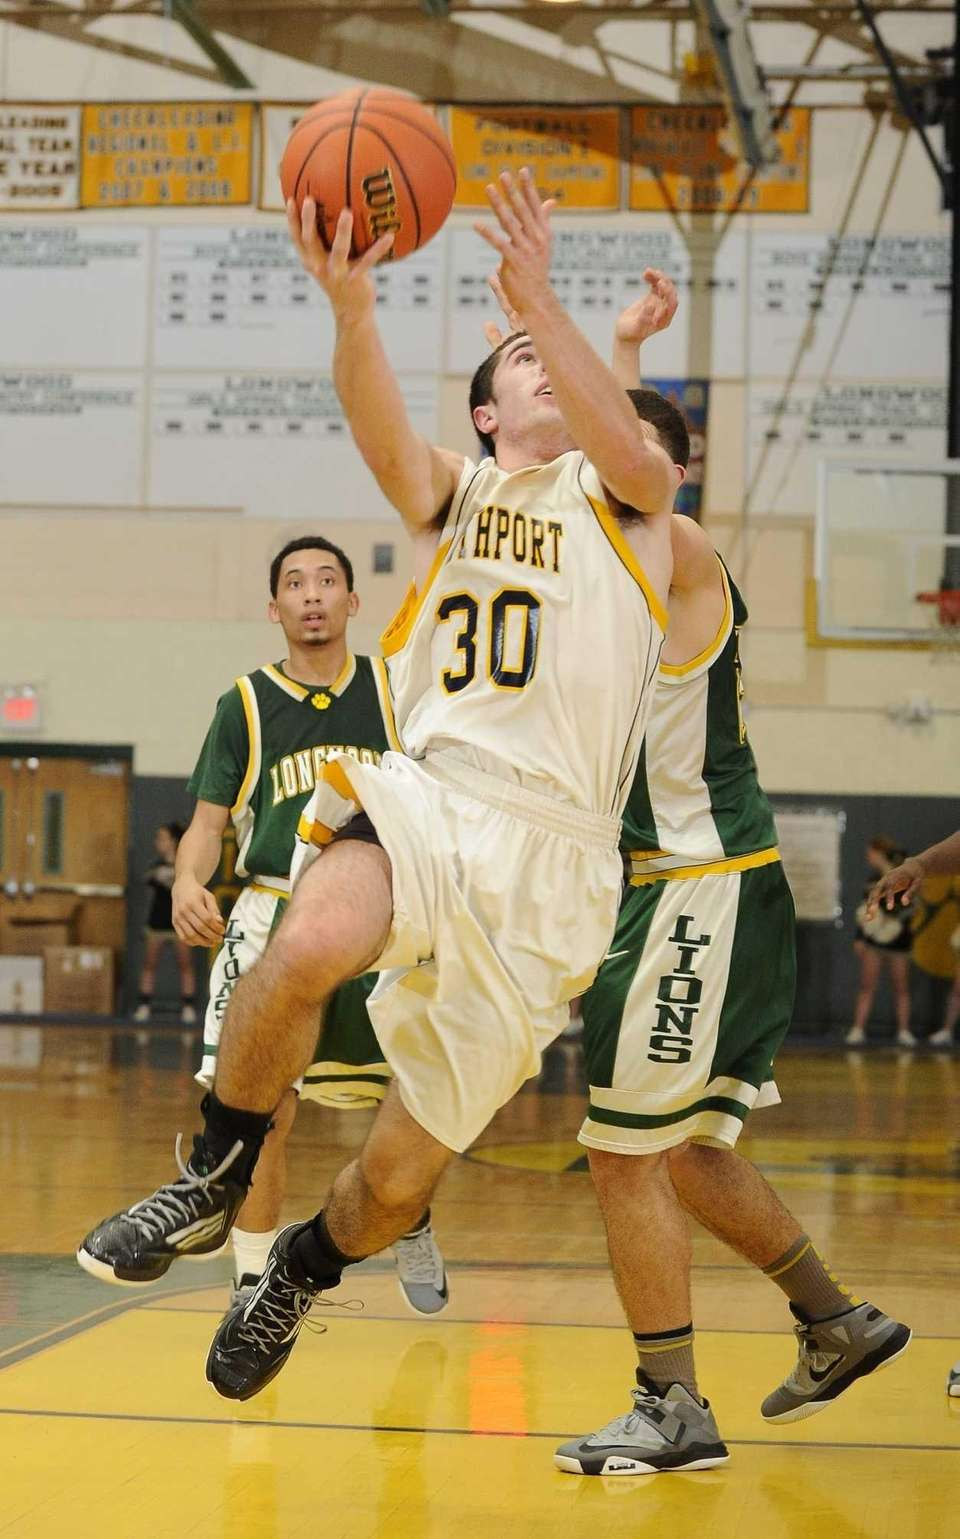 Northport's Matt Smith scores on a layup agaisnt